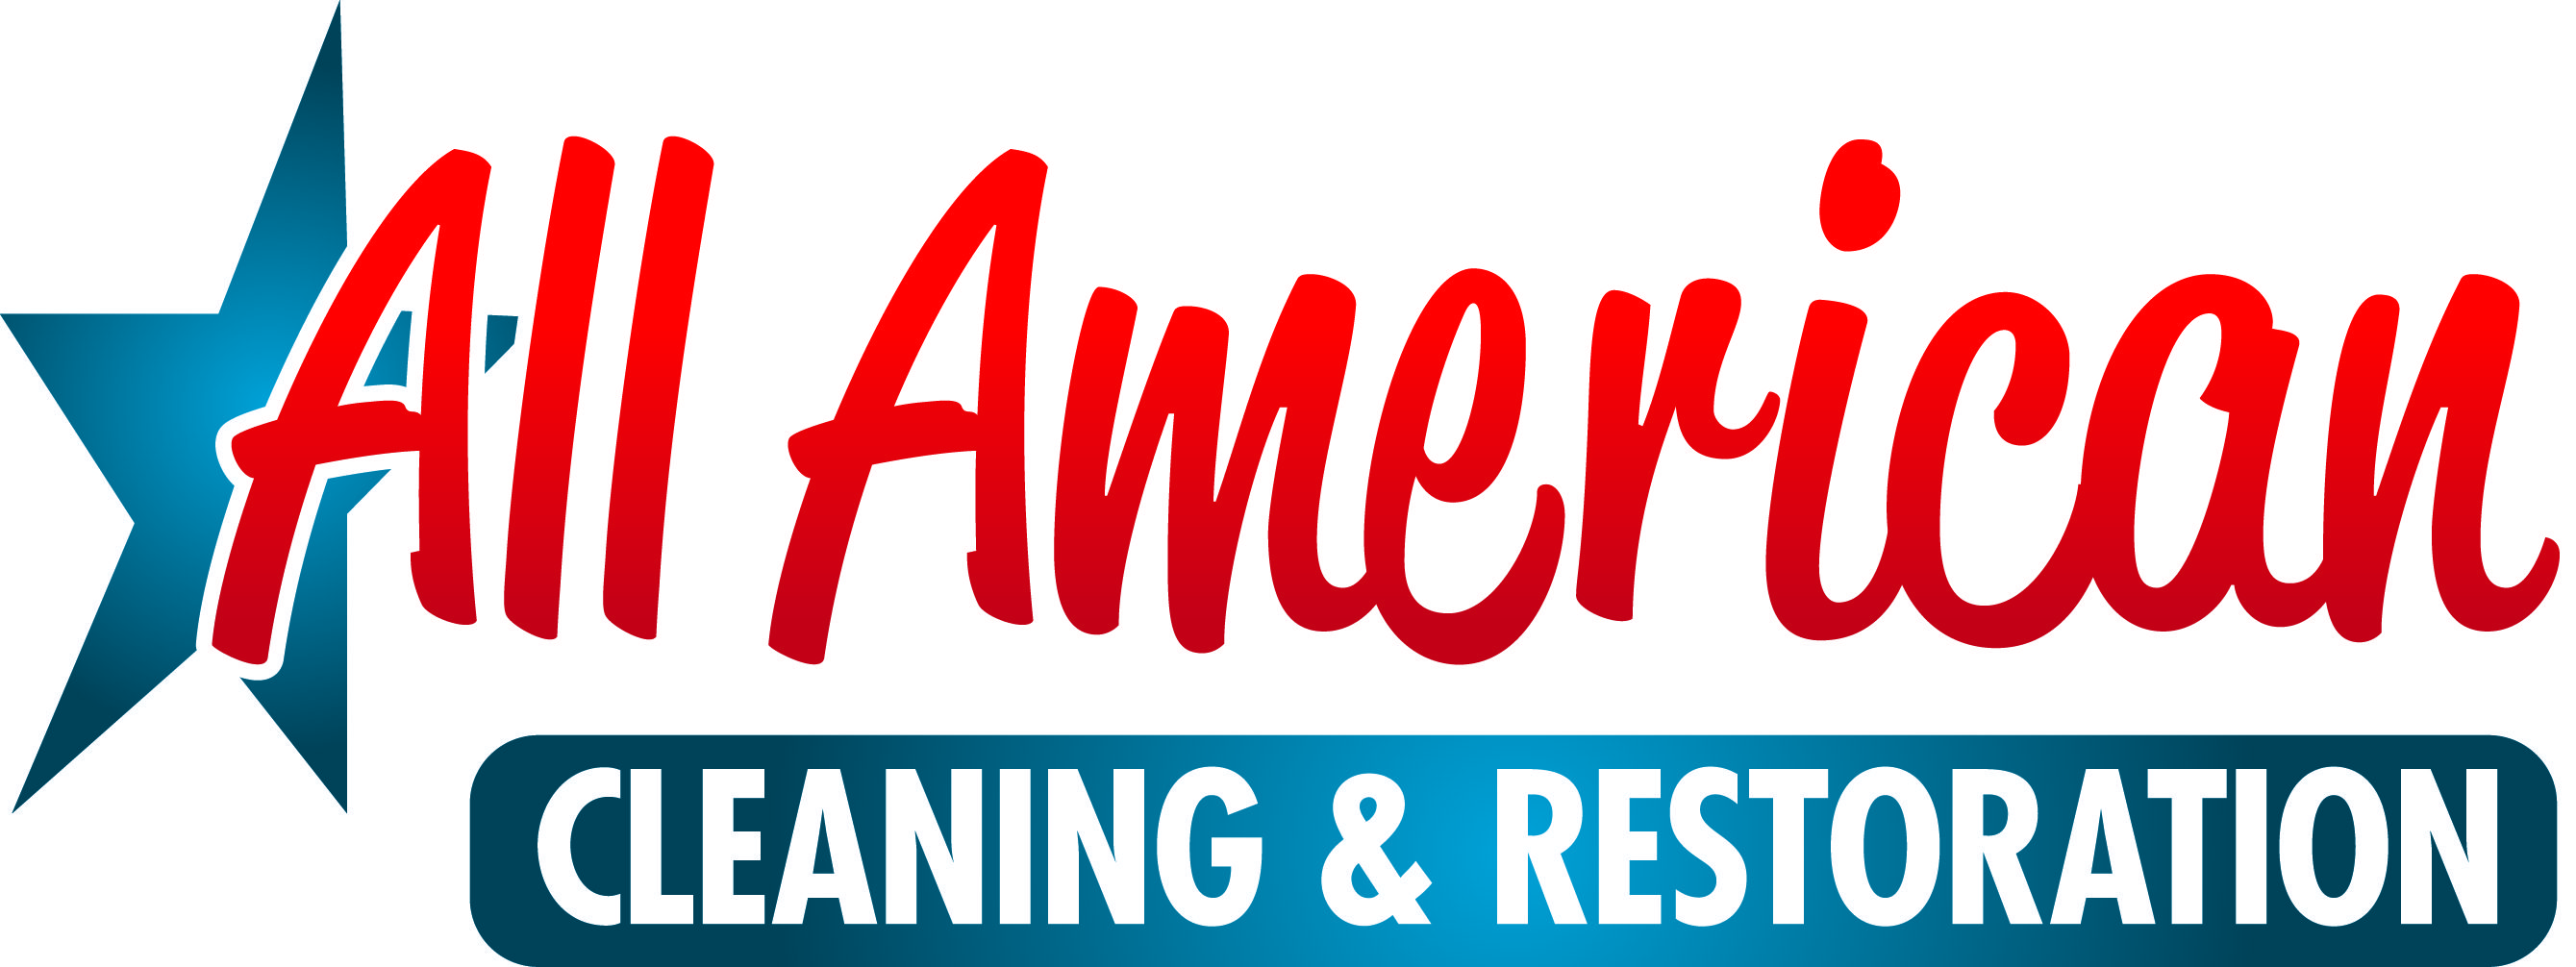 All American Cleaning & Restoration